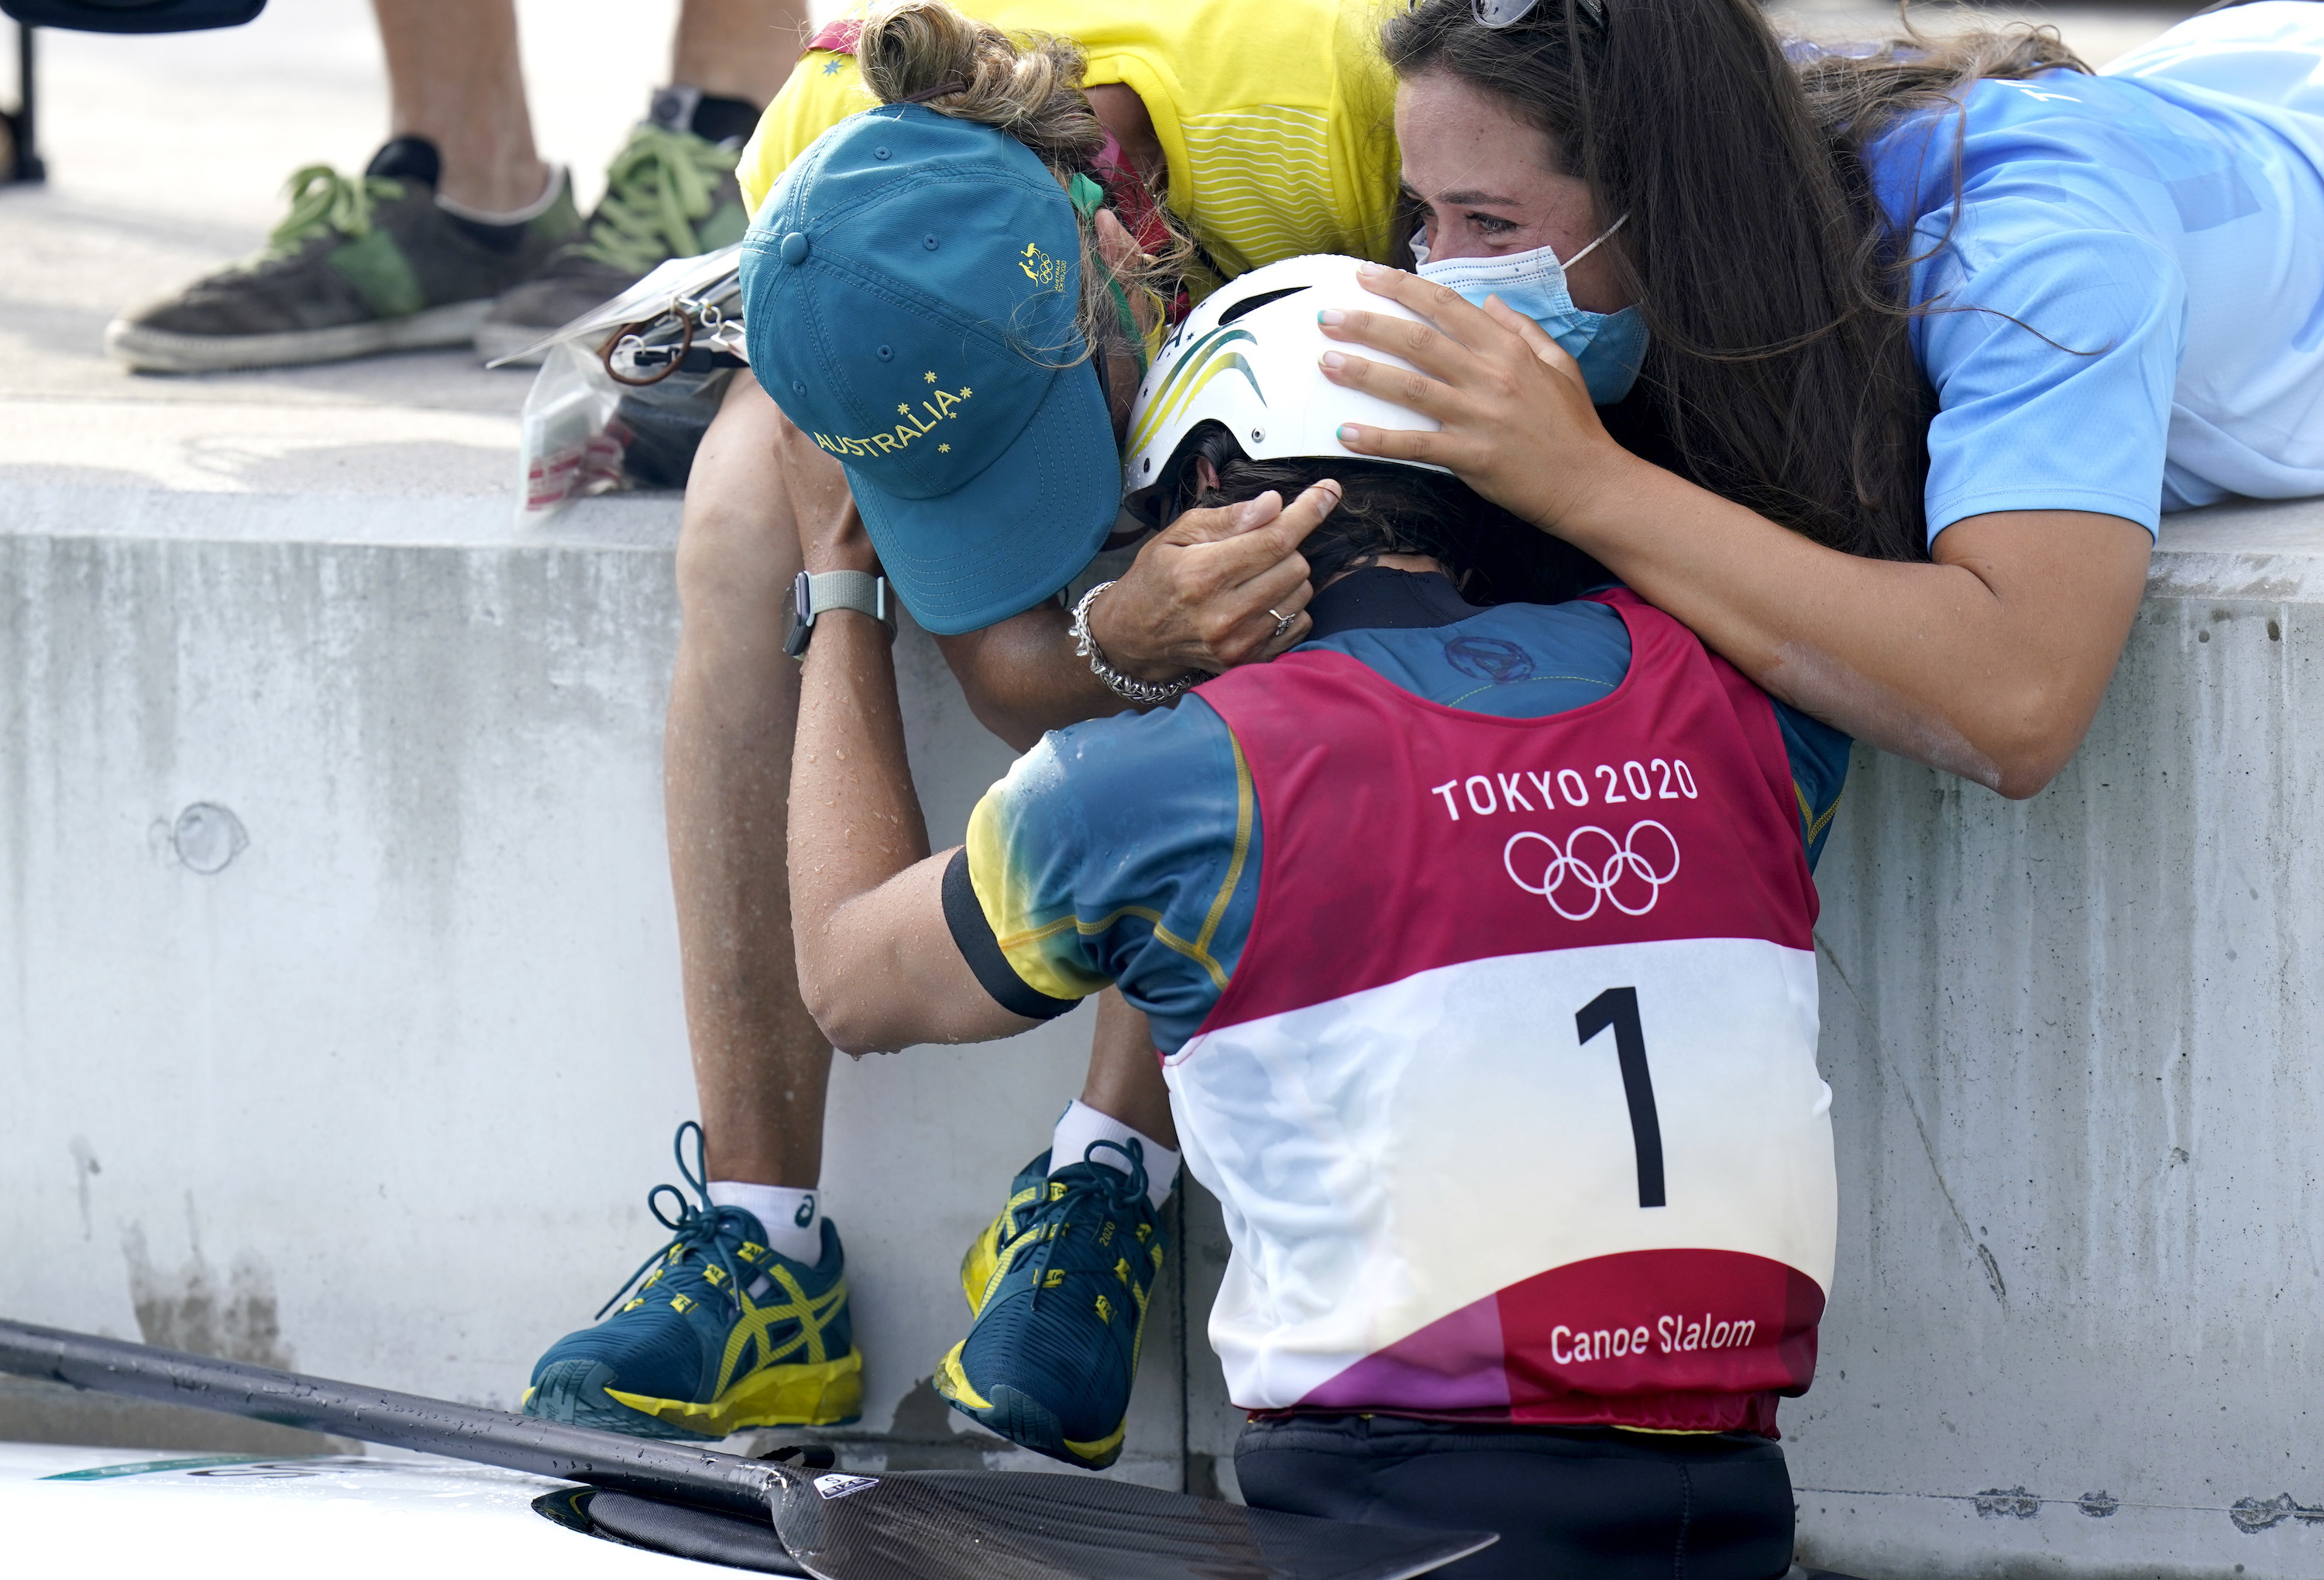 An athlete reaches out to hug her team after competing in the canoe slalom at the Olympics